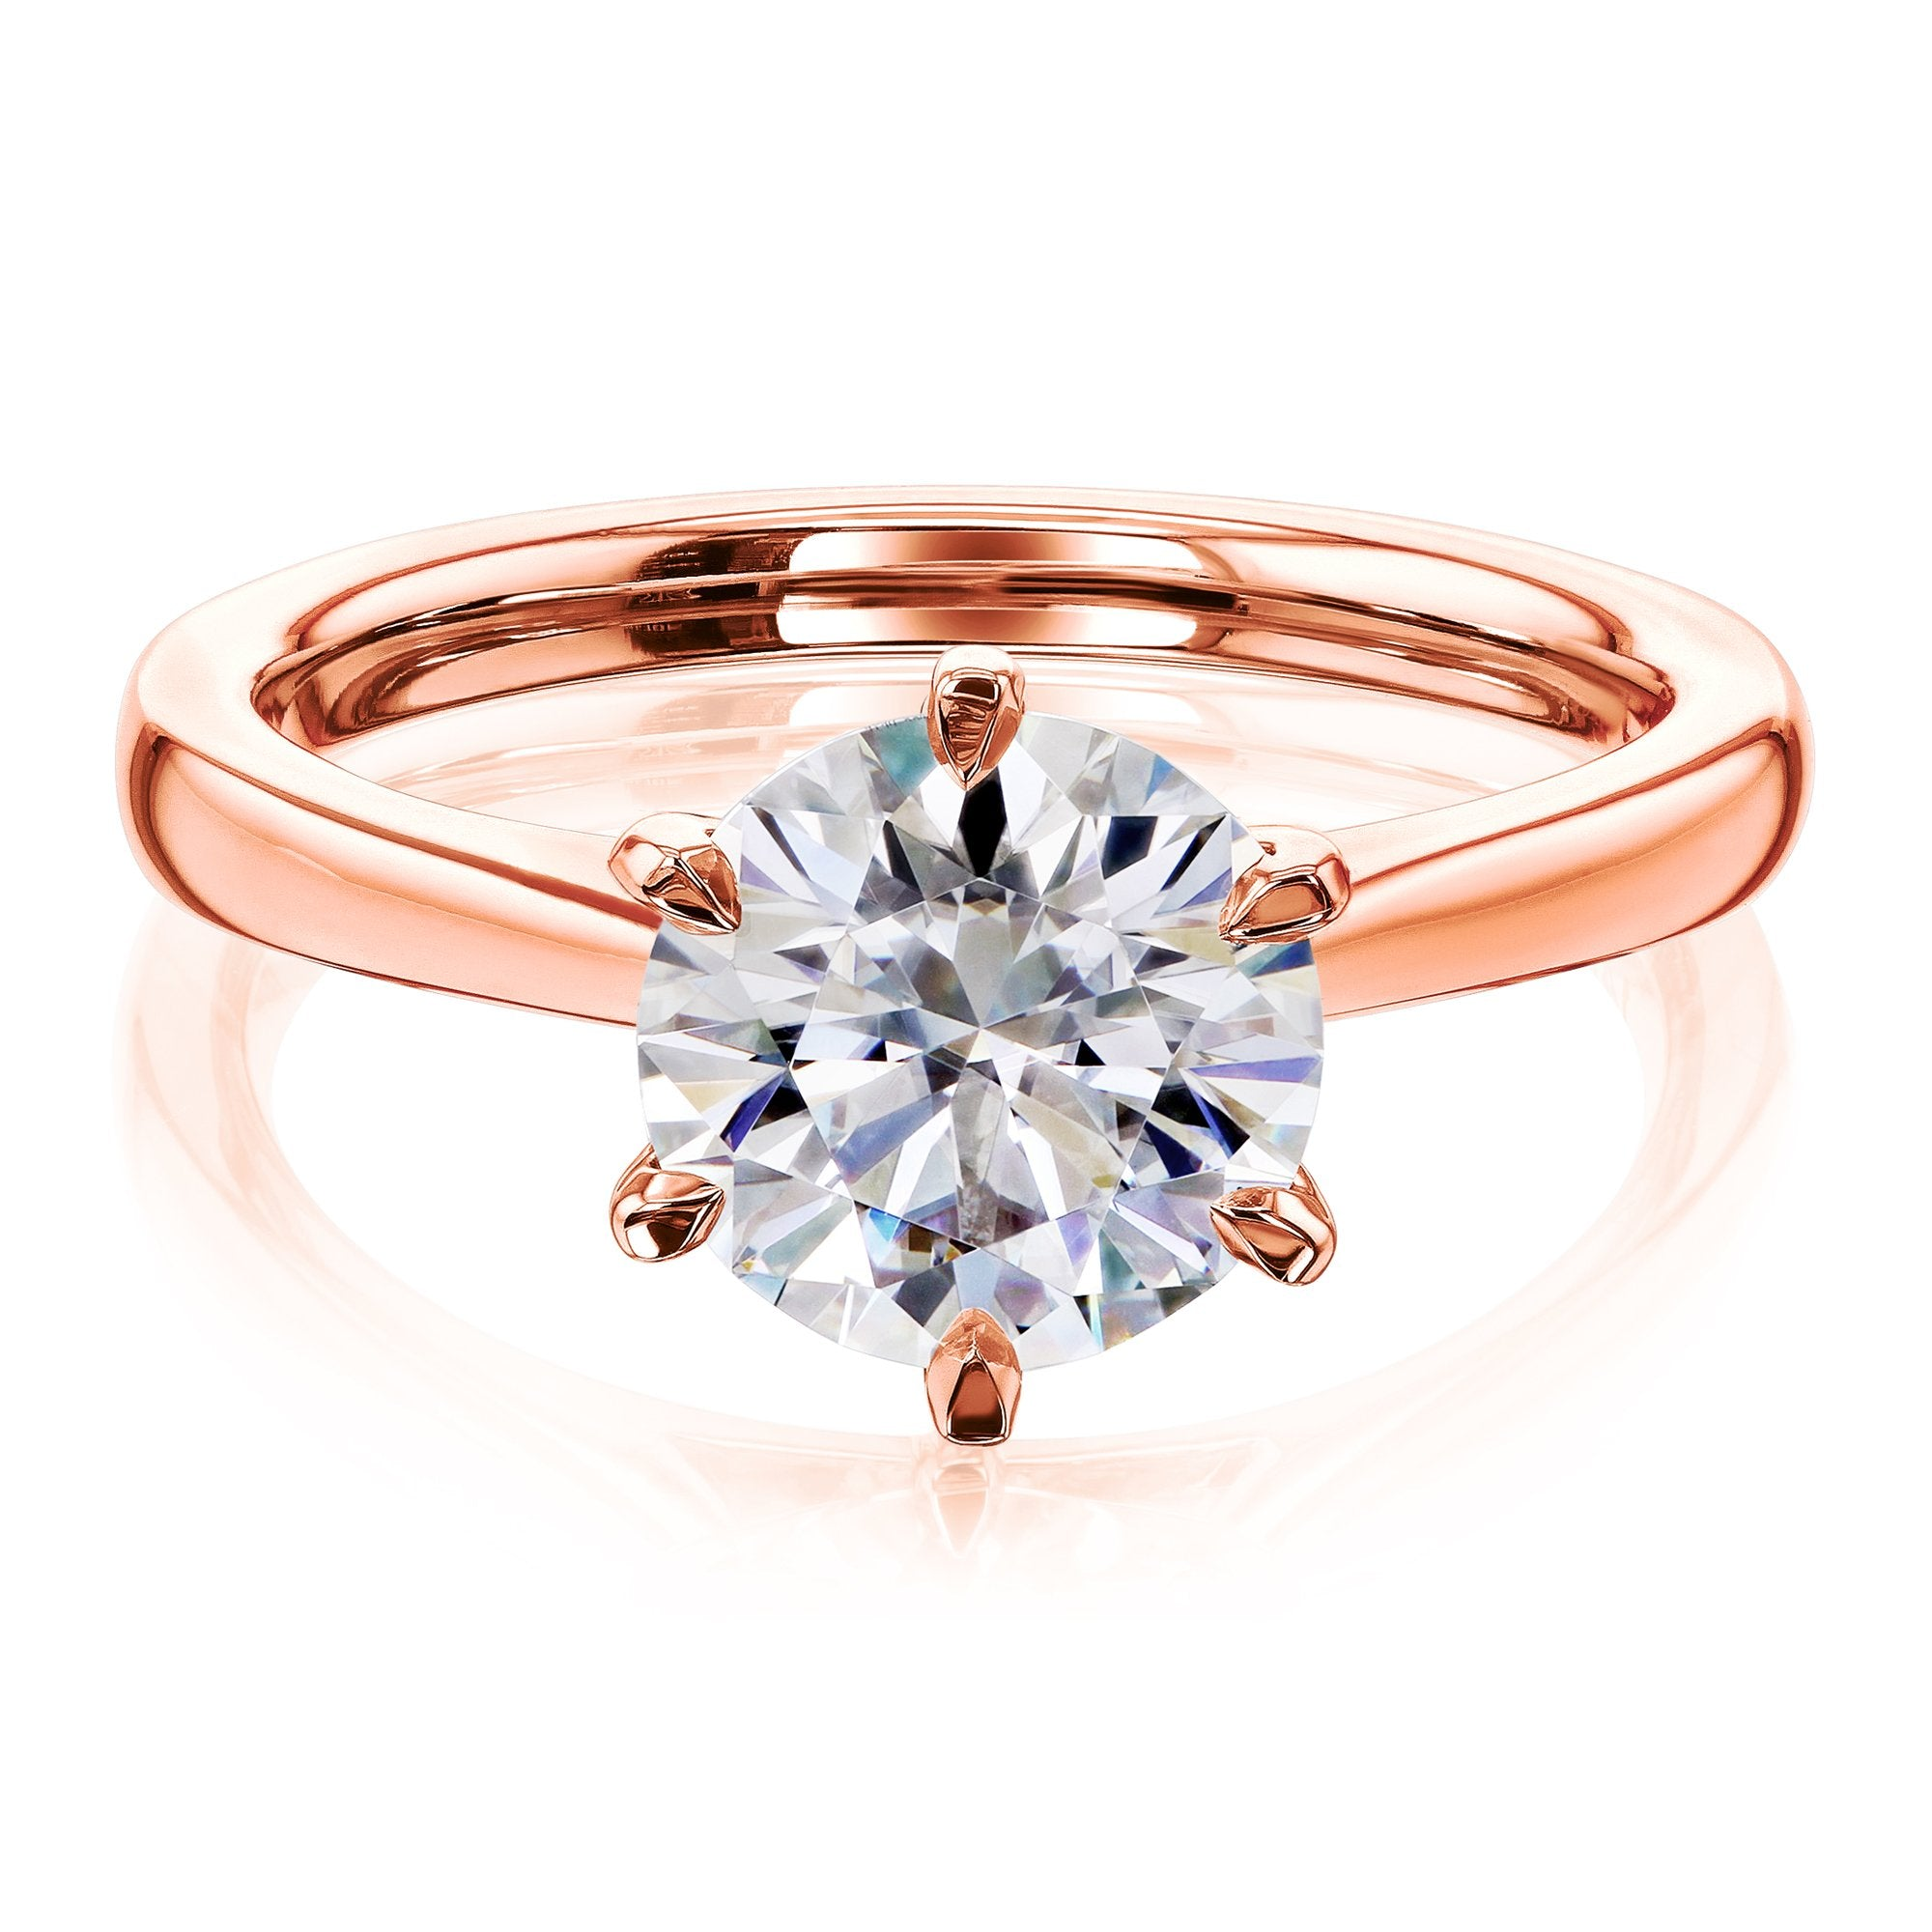 Coupons 1.9ct Round Forever One Moissanite 6-Prong Ring - rose-gold 5.5